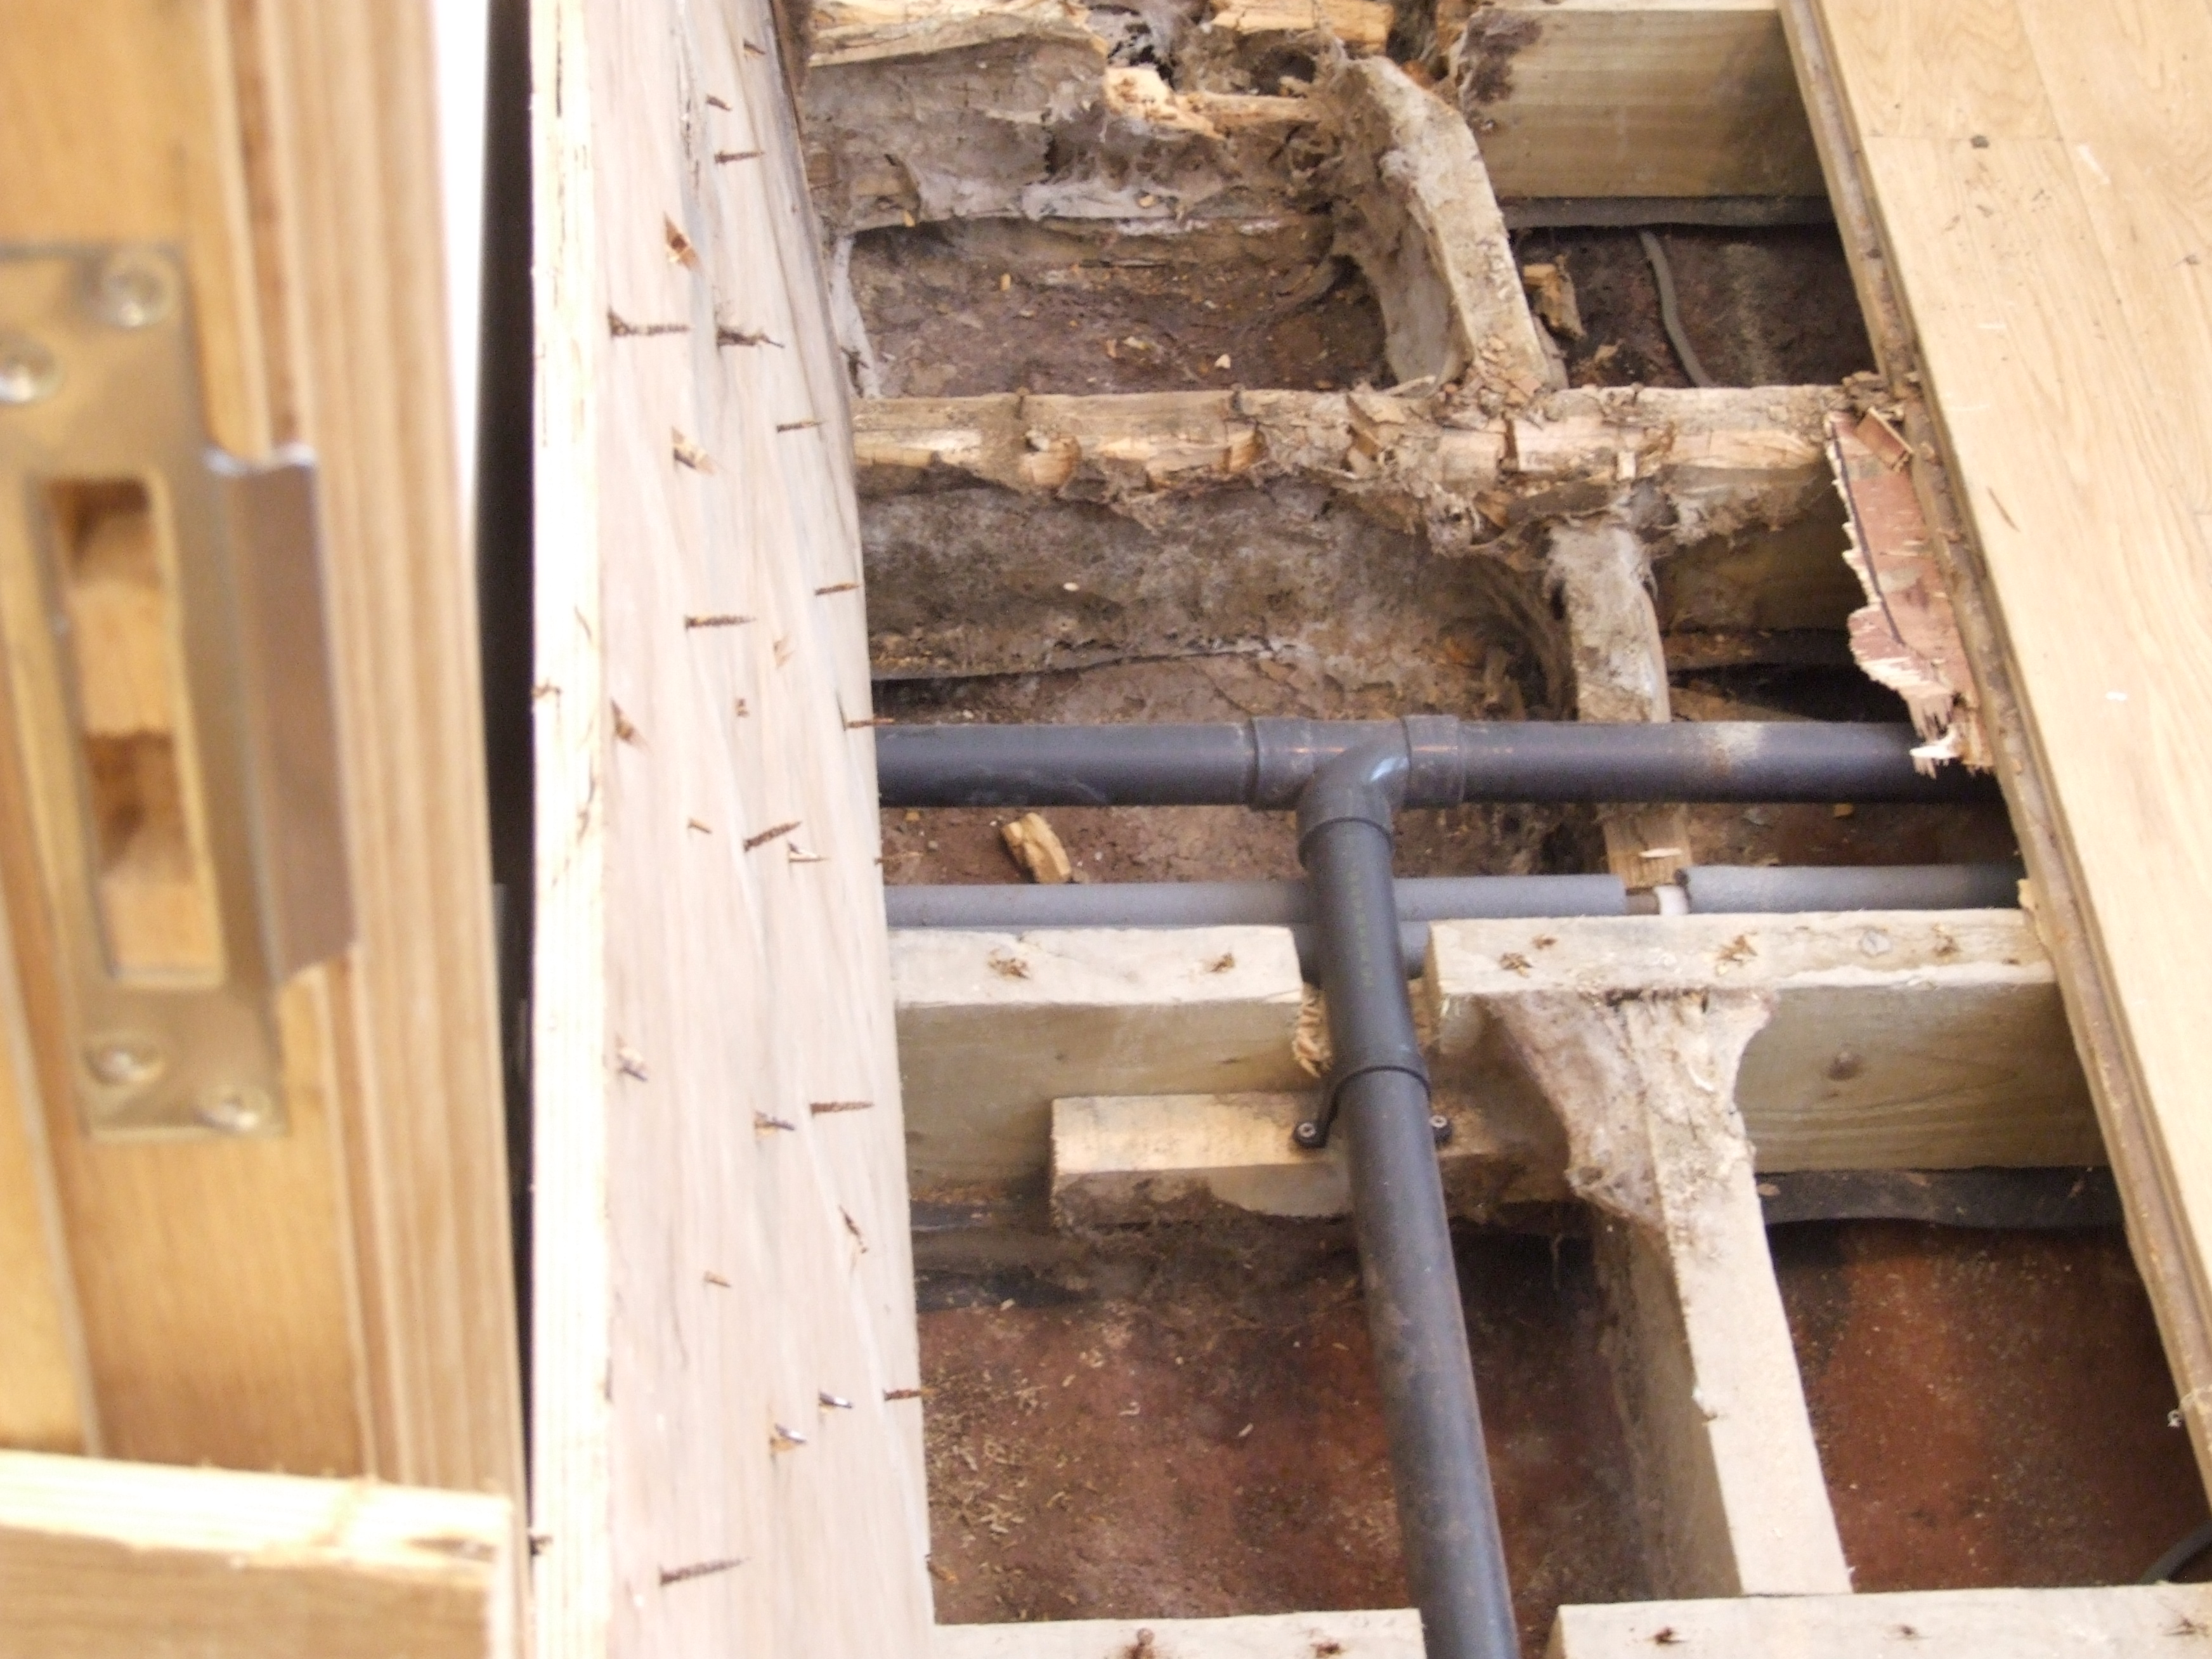 Atics Ltd | ALL TIMBER INFESTATION AND CONSULTANCY SERVICES LTD.